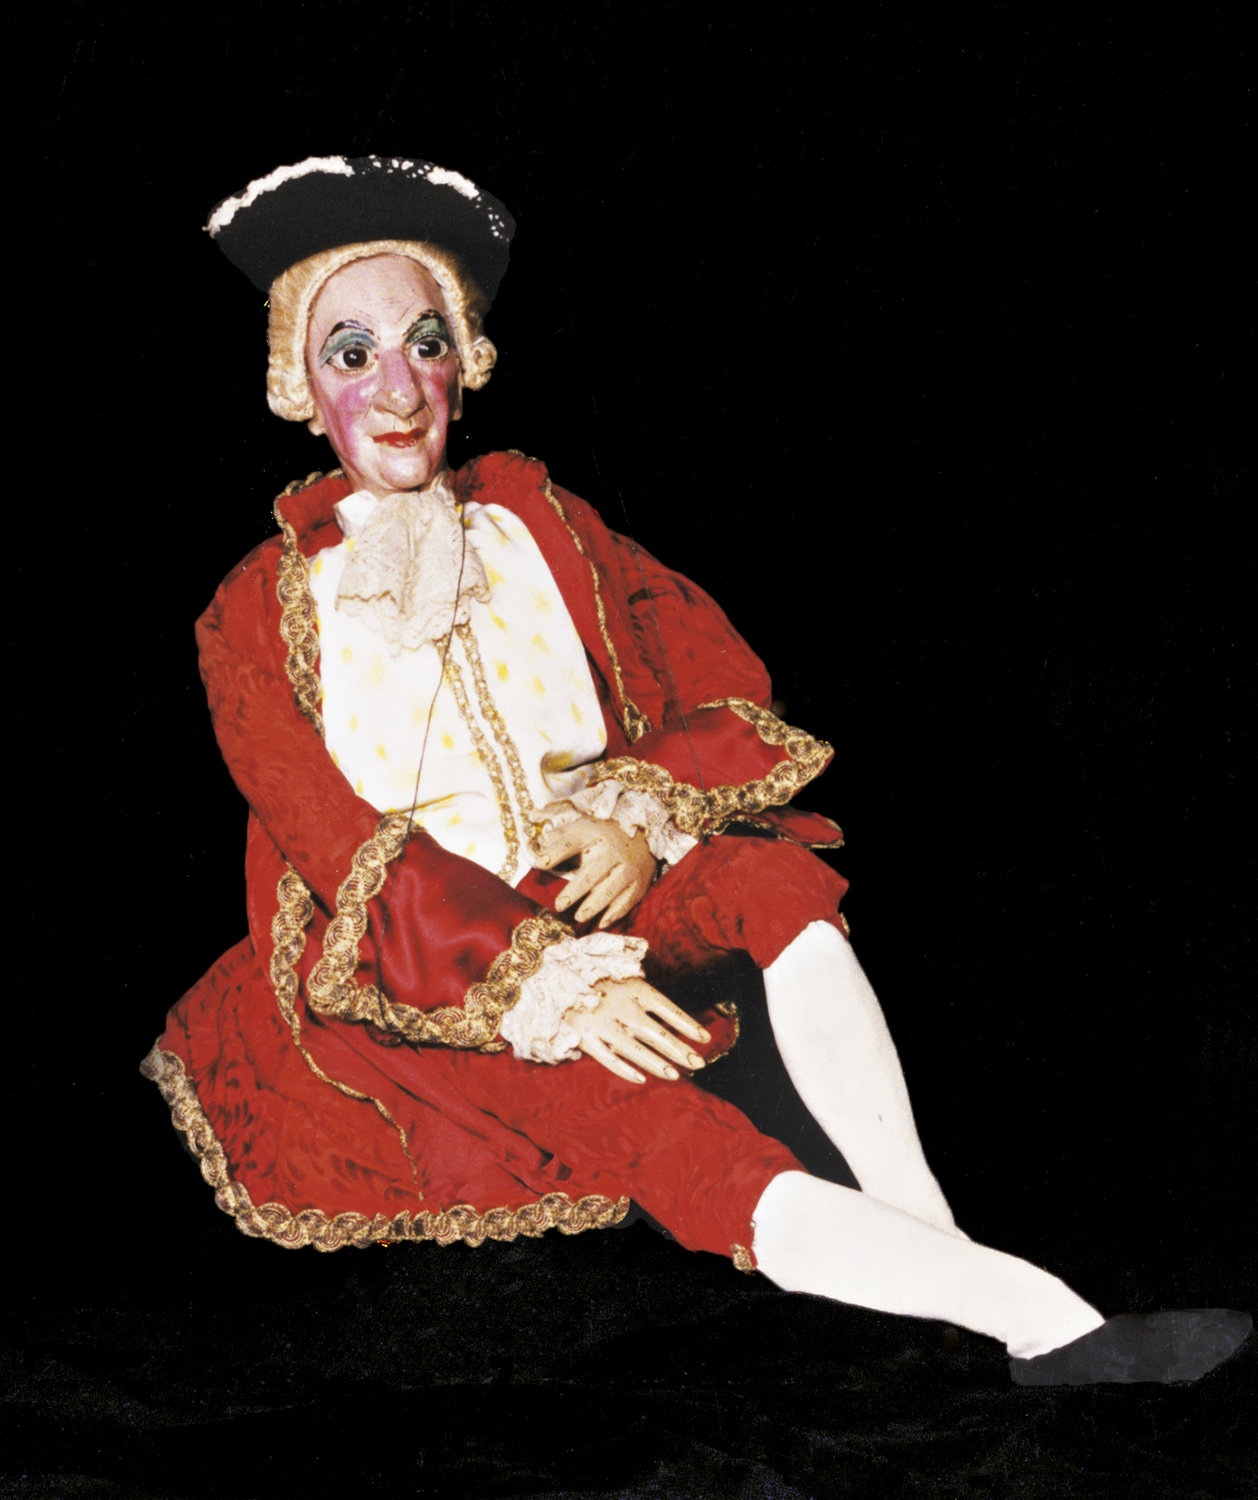 Cassandrino, puppet theatre character created by Filippo Teoli (first half of 19th century), based on the Cassandro mask of the commedia dell'arte. String puppet. Collezione Maria Signorelli. Photo: Maristella Campolunghi and Teresa Bianchi